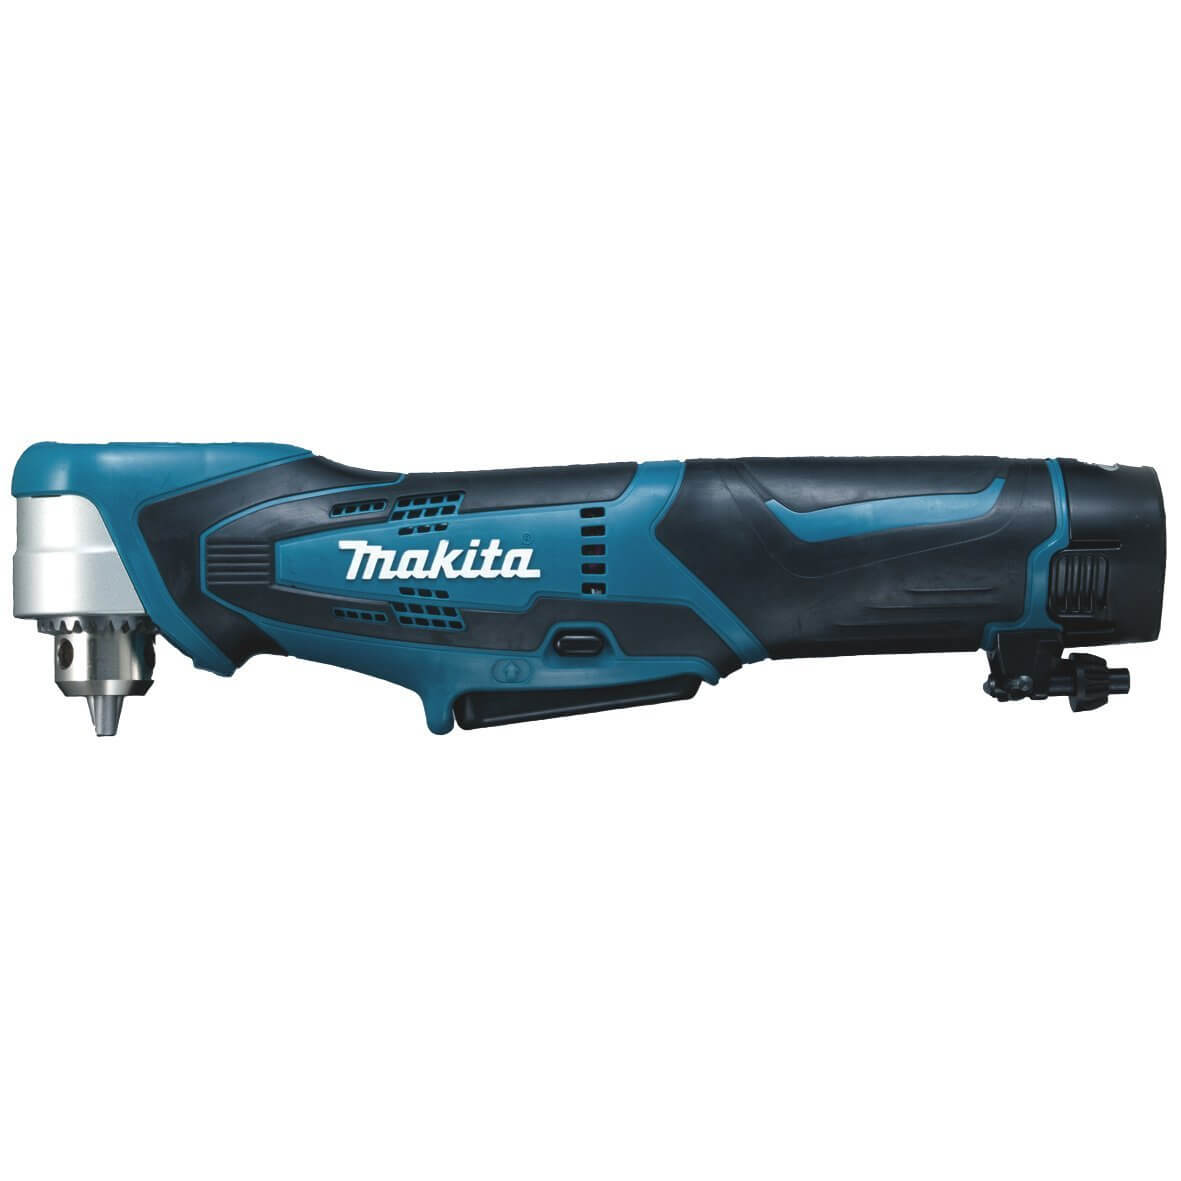 Makita-DA330DWE-Perceuse-dangle-sans-fil-108-V-1 Avis Bosch GWB10RE perceuse d'angle test comparatif